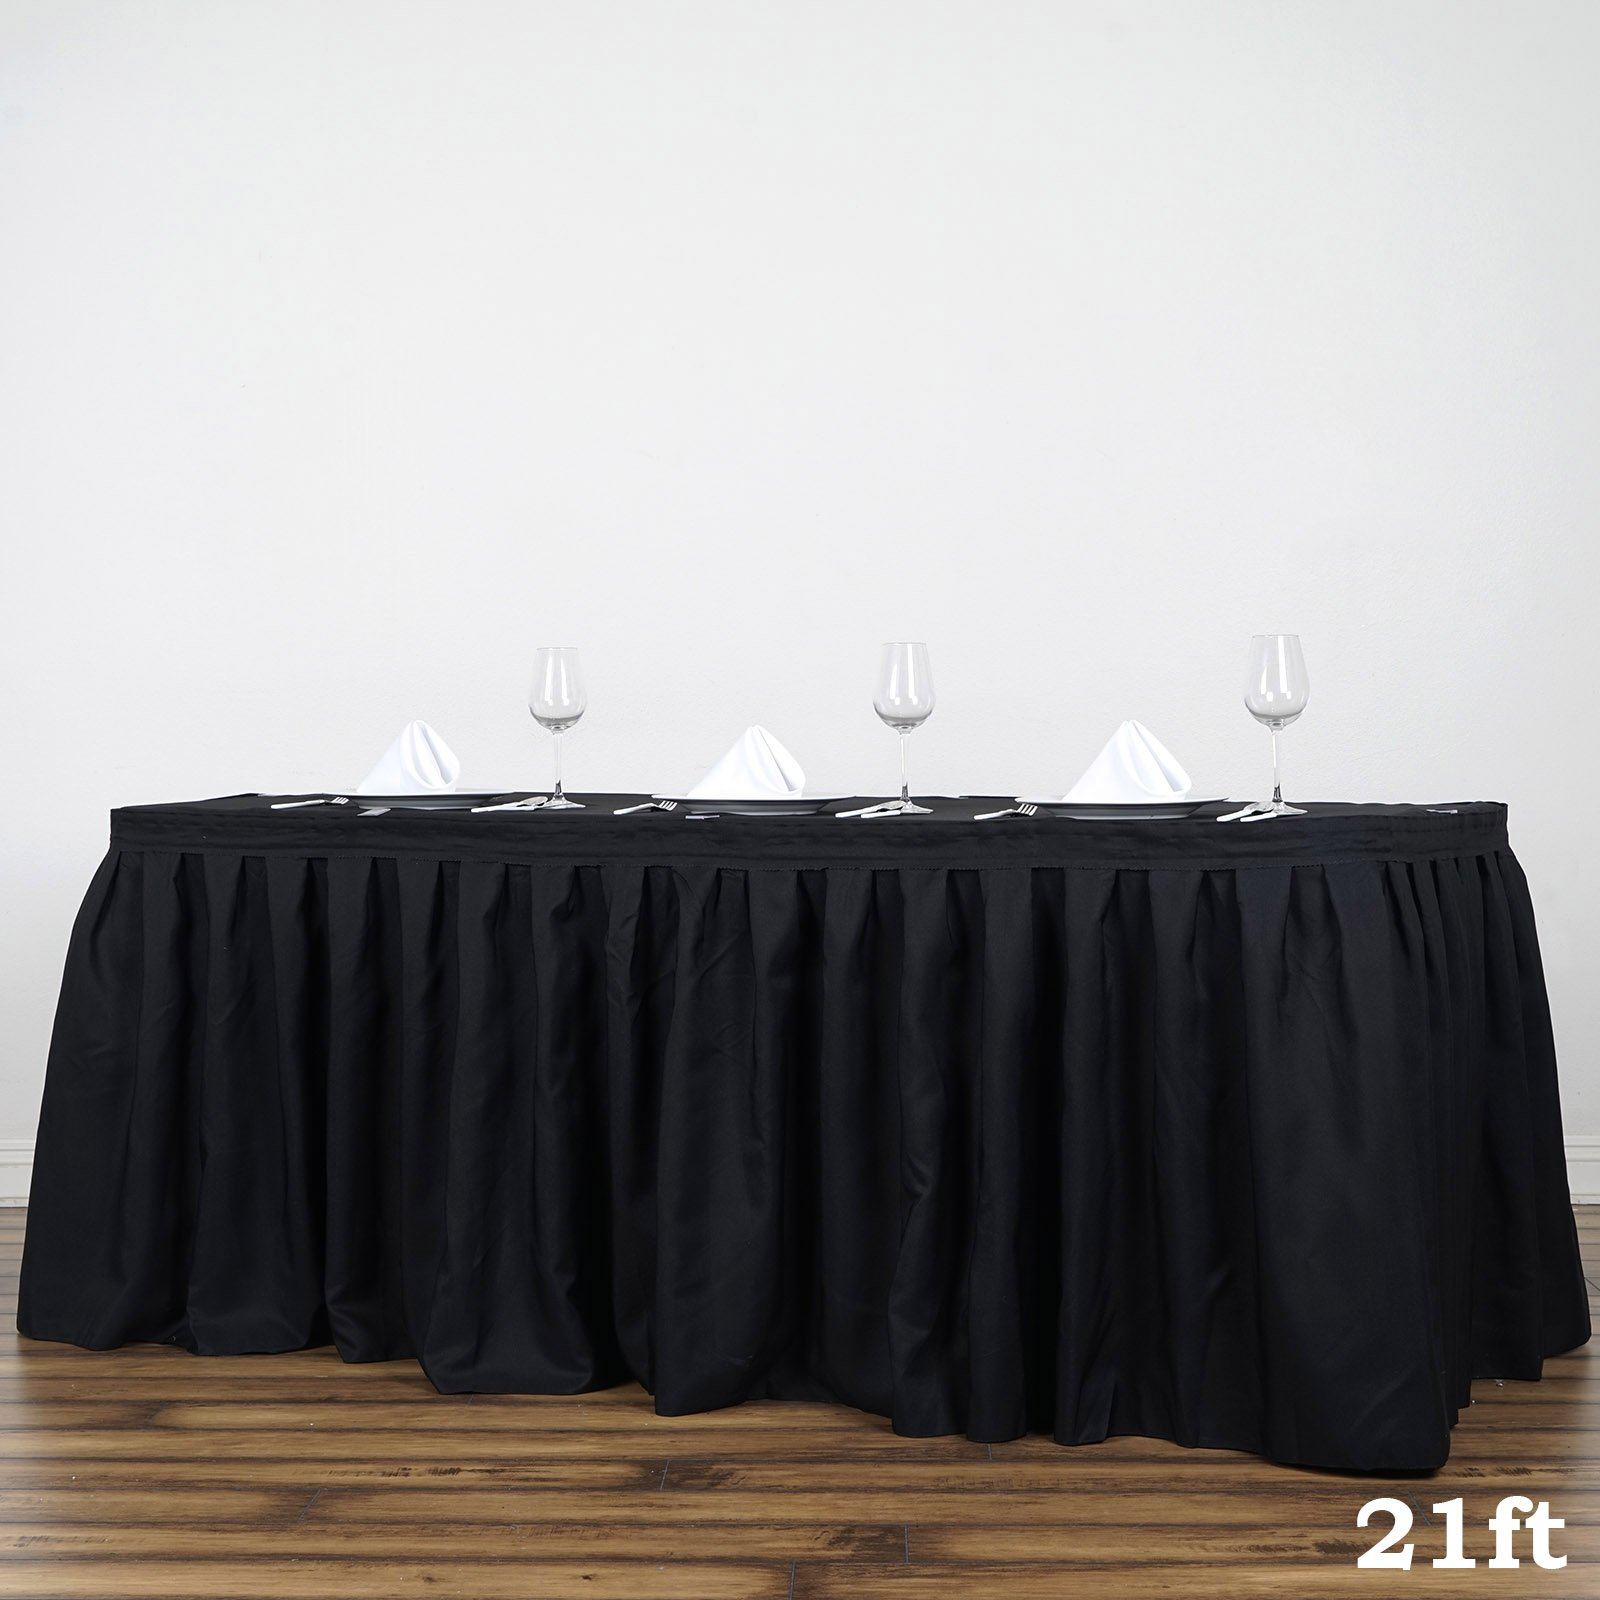 BalsaCircle 21 feet x 29-Inch Black Polyester Banquet Table Skirt Linens Wedding Party Events Decorations Kitchen Dining Catering by BalsaCircle (Image #2)